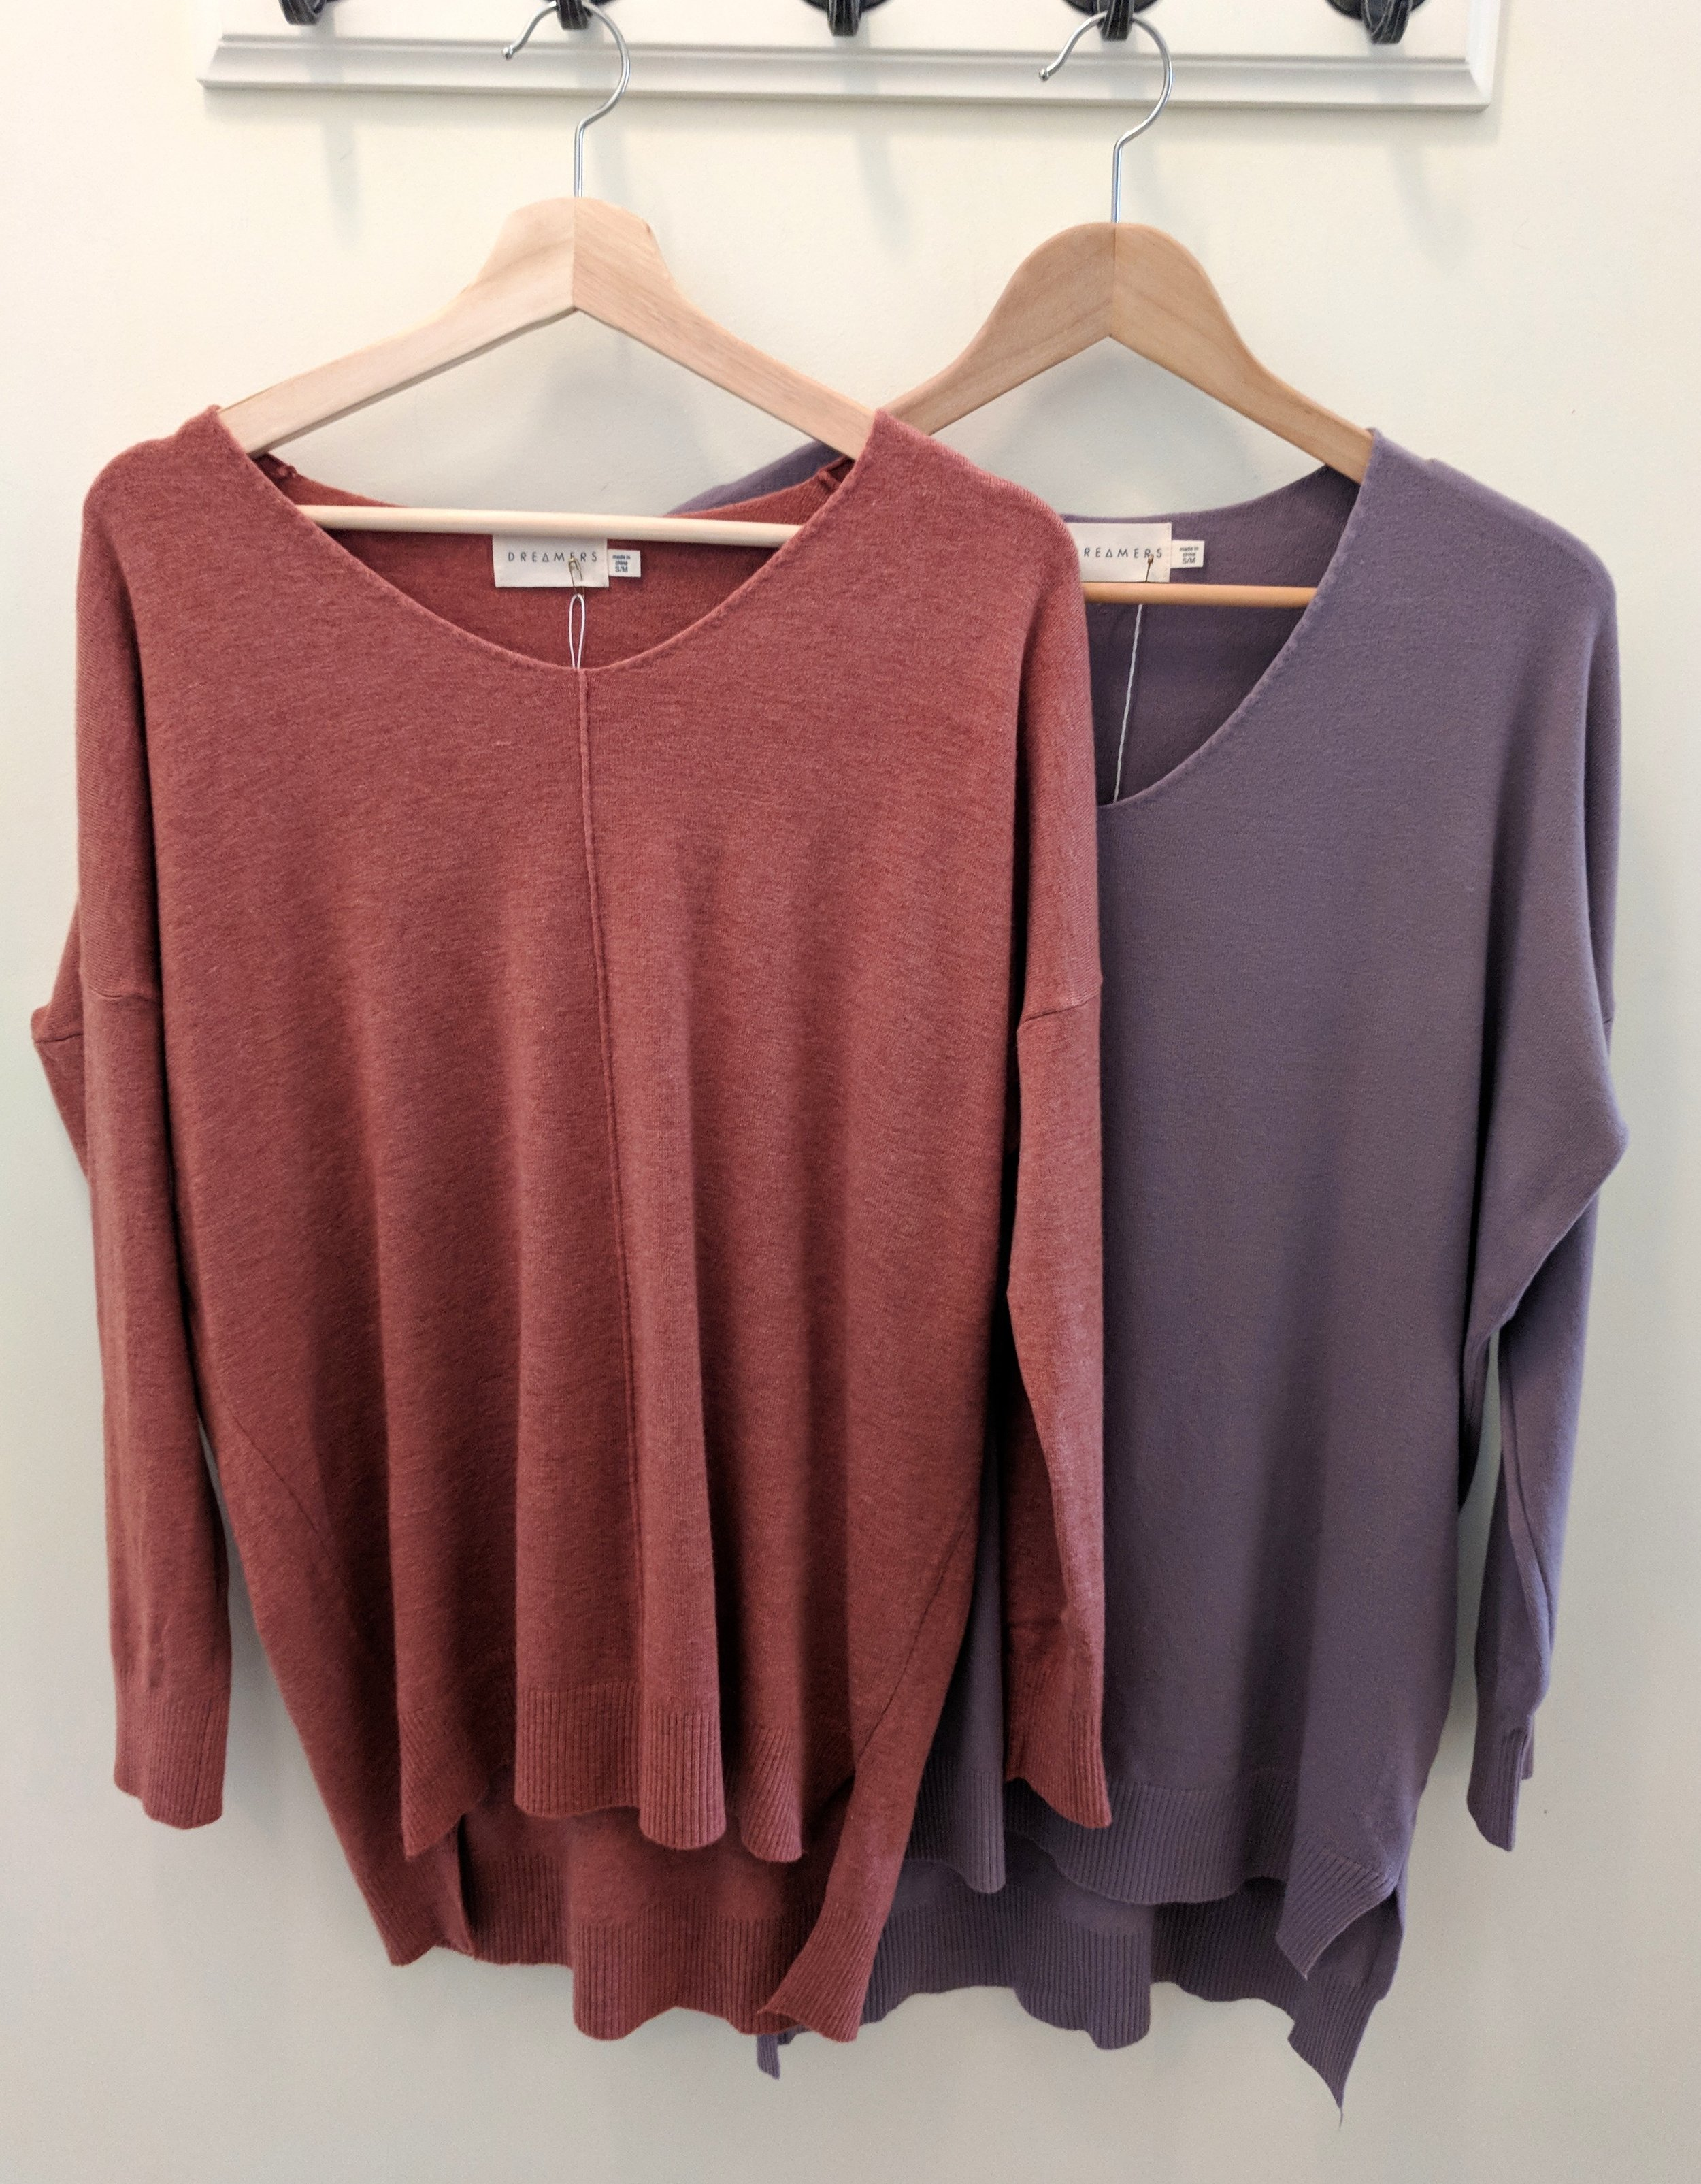 Heather Coral and Dusty Lavender Dreamer Sweater $42